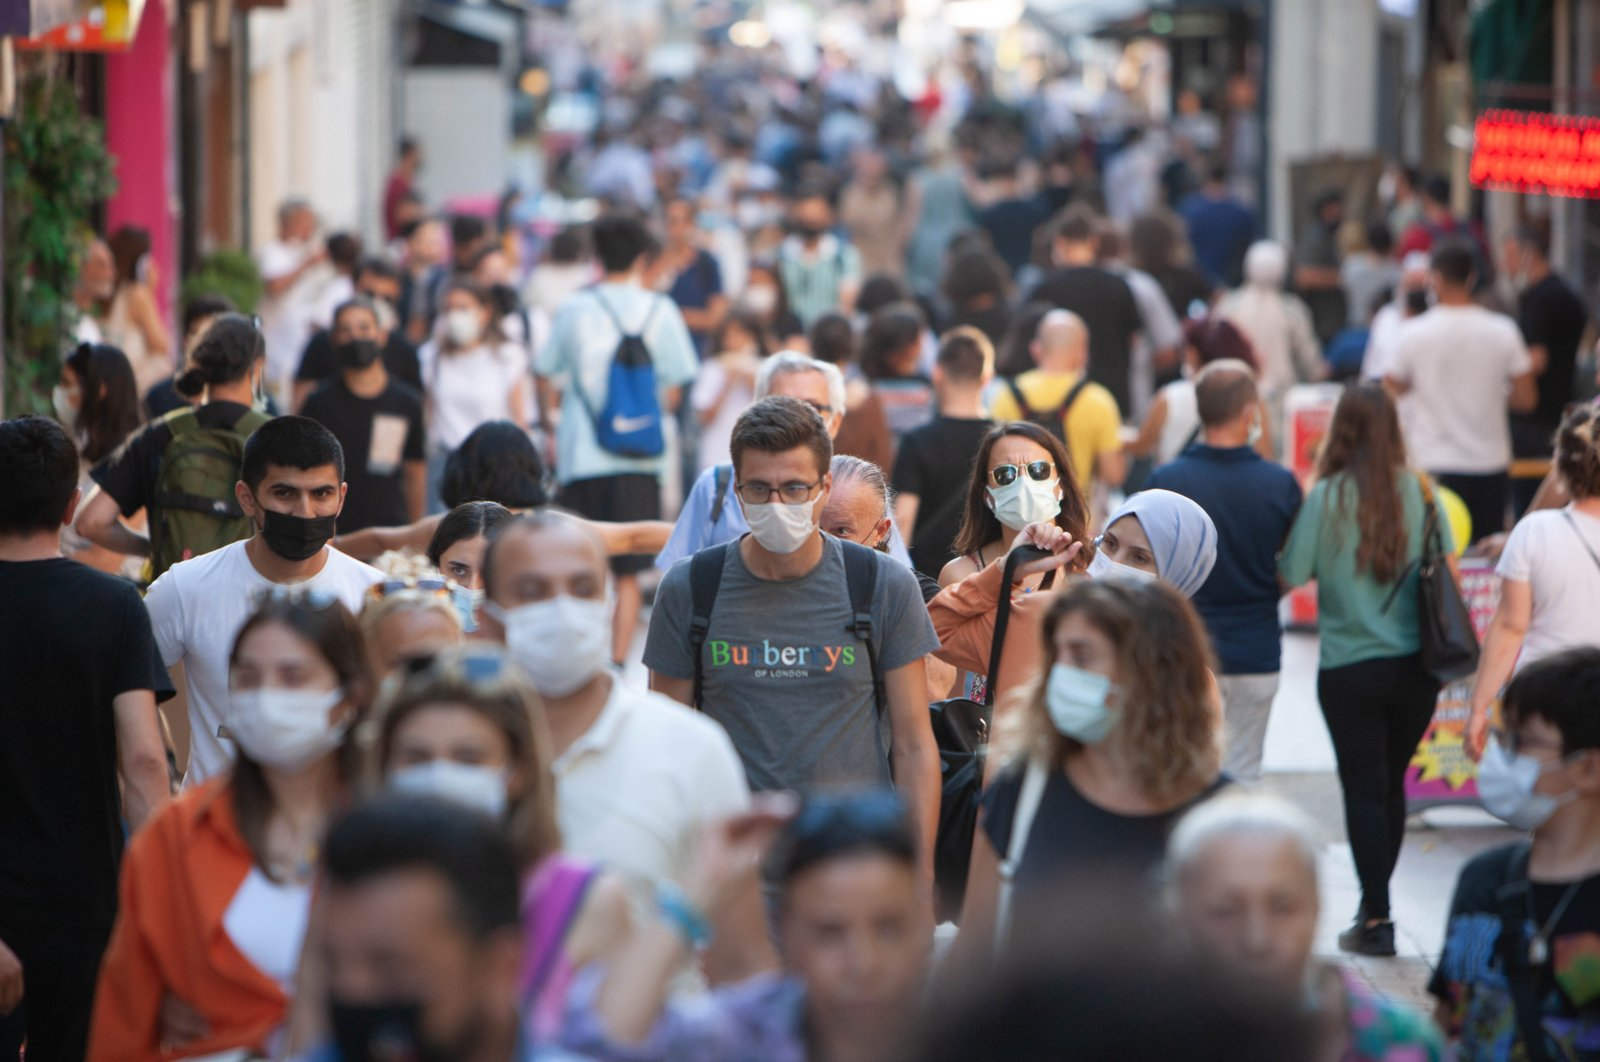 People wearing protective face masks crowd a street in Kadıköy district amid the coronavirus (COVID-19) pandemic in Istanbul, Turkey, Aug. 7, 2021. (Reuters Photo)